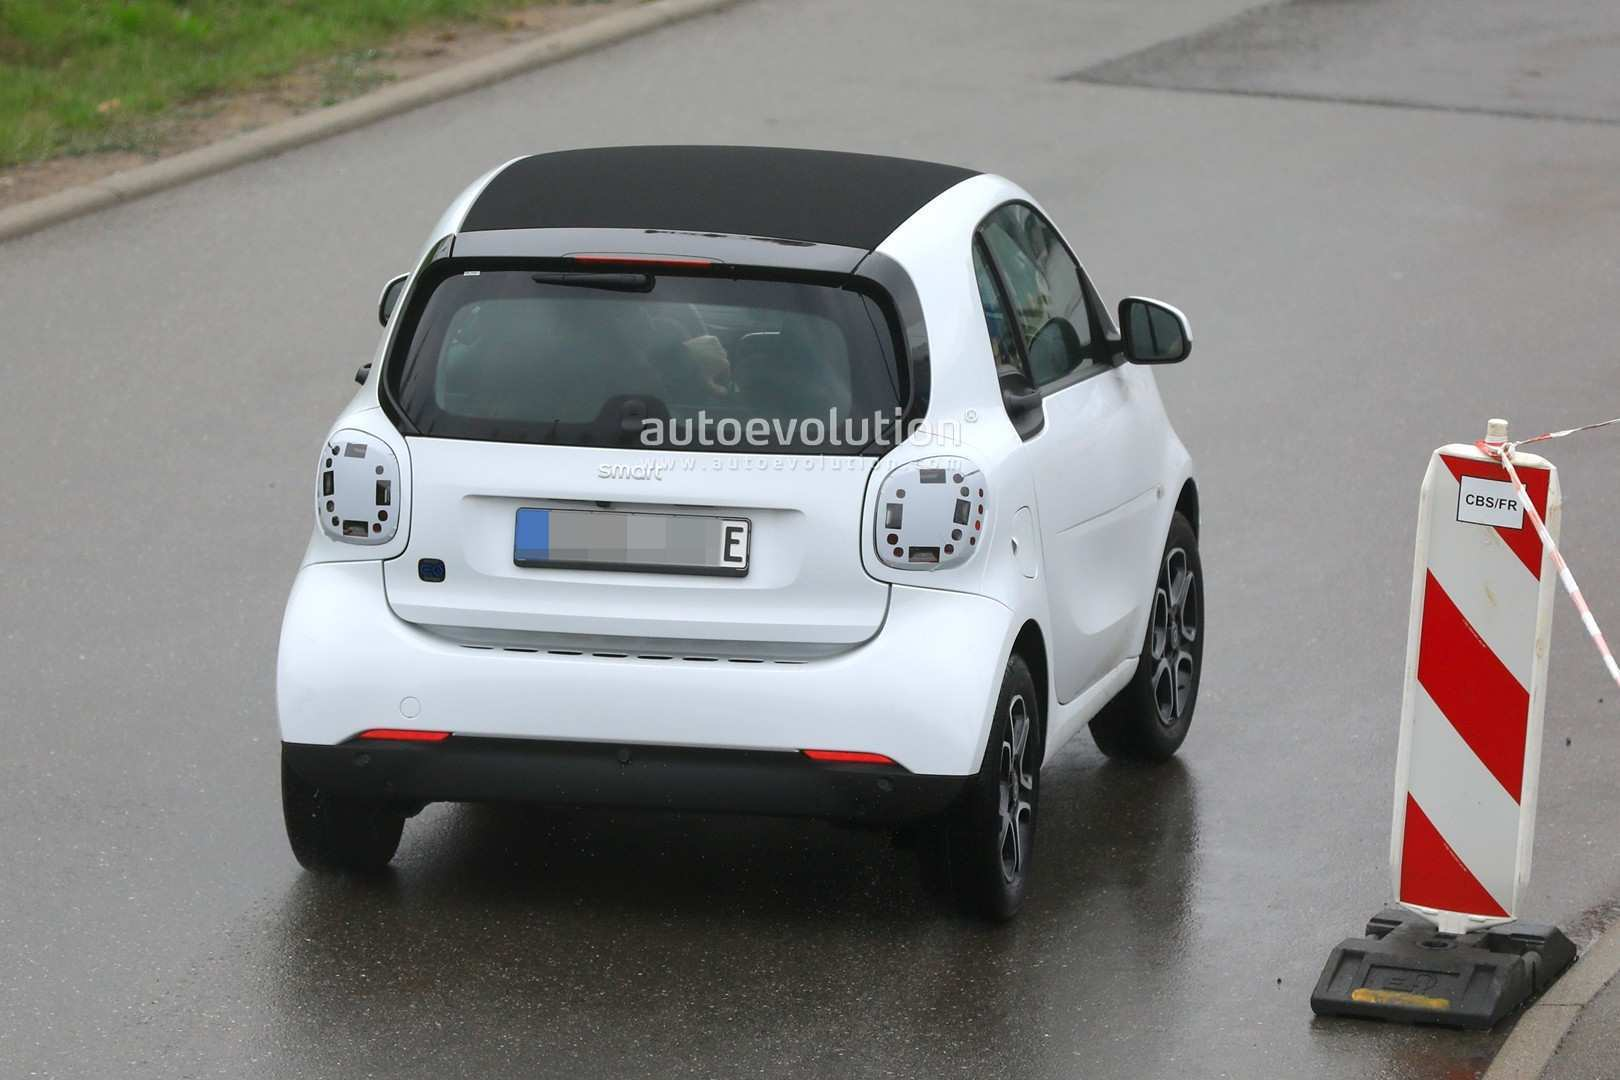 80 The Best 2020 Smart Fortwos Exterior And Interior